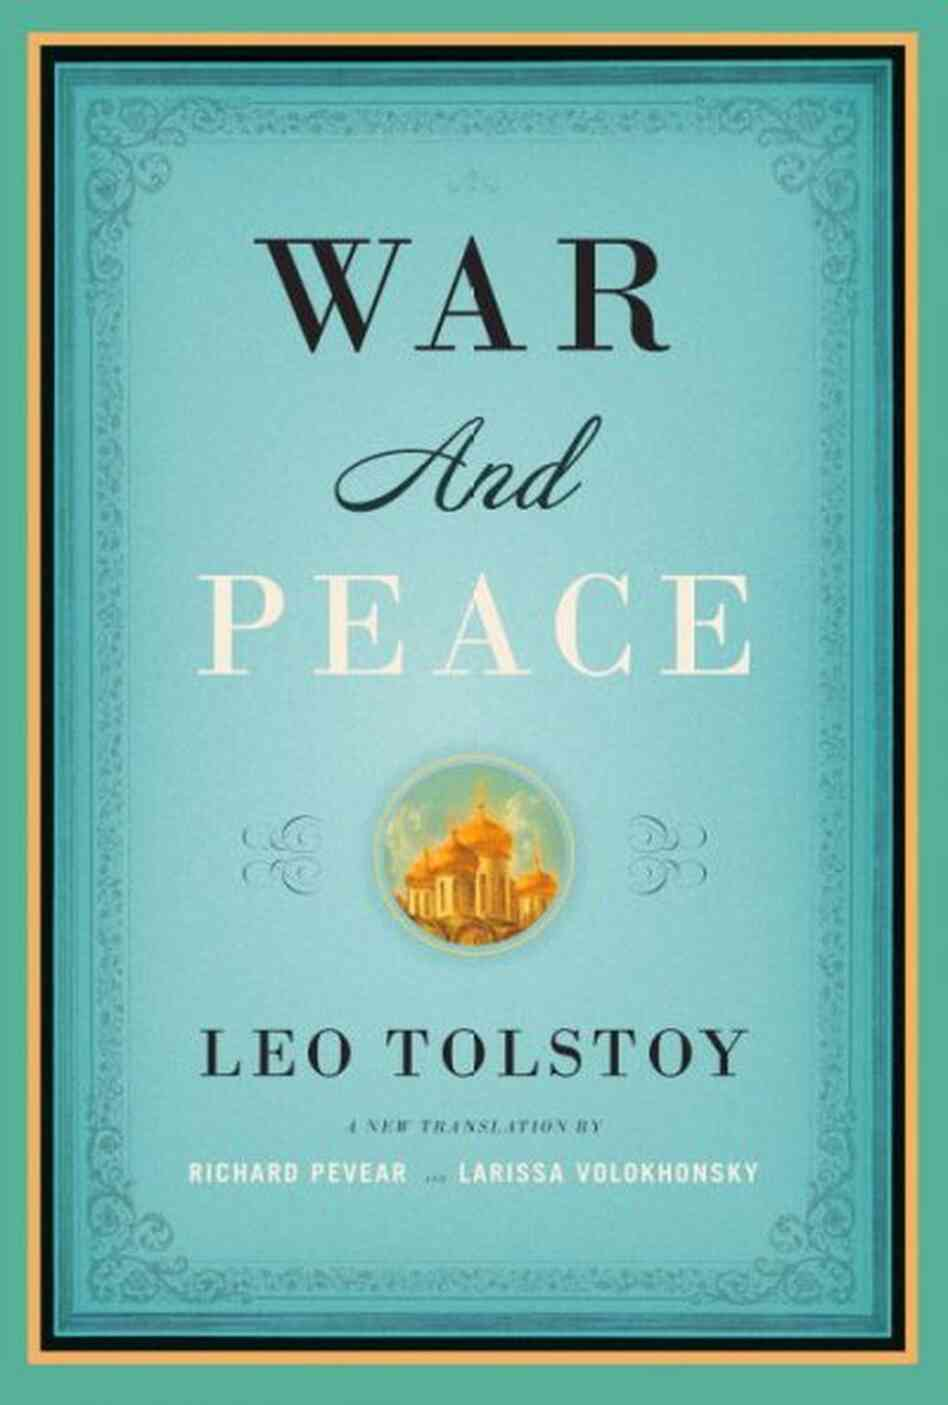 [PDF] War and Peace Book by Leo Tolstoy Free Download (1392 pages)